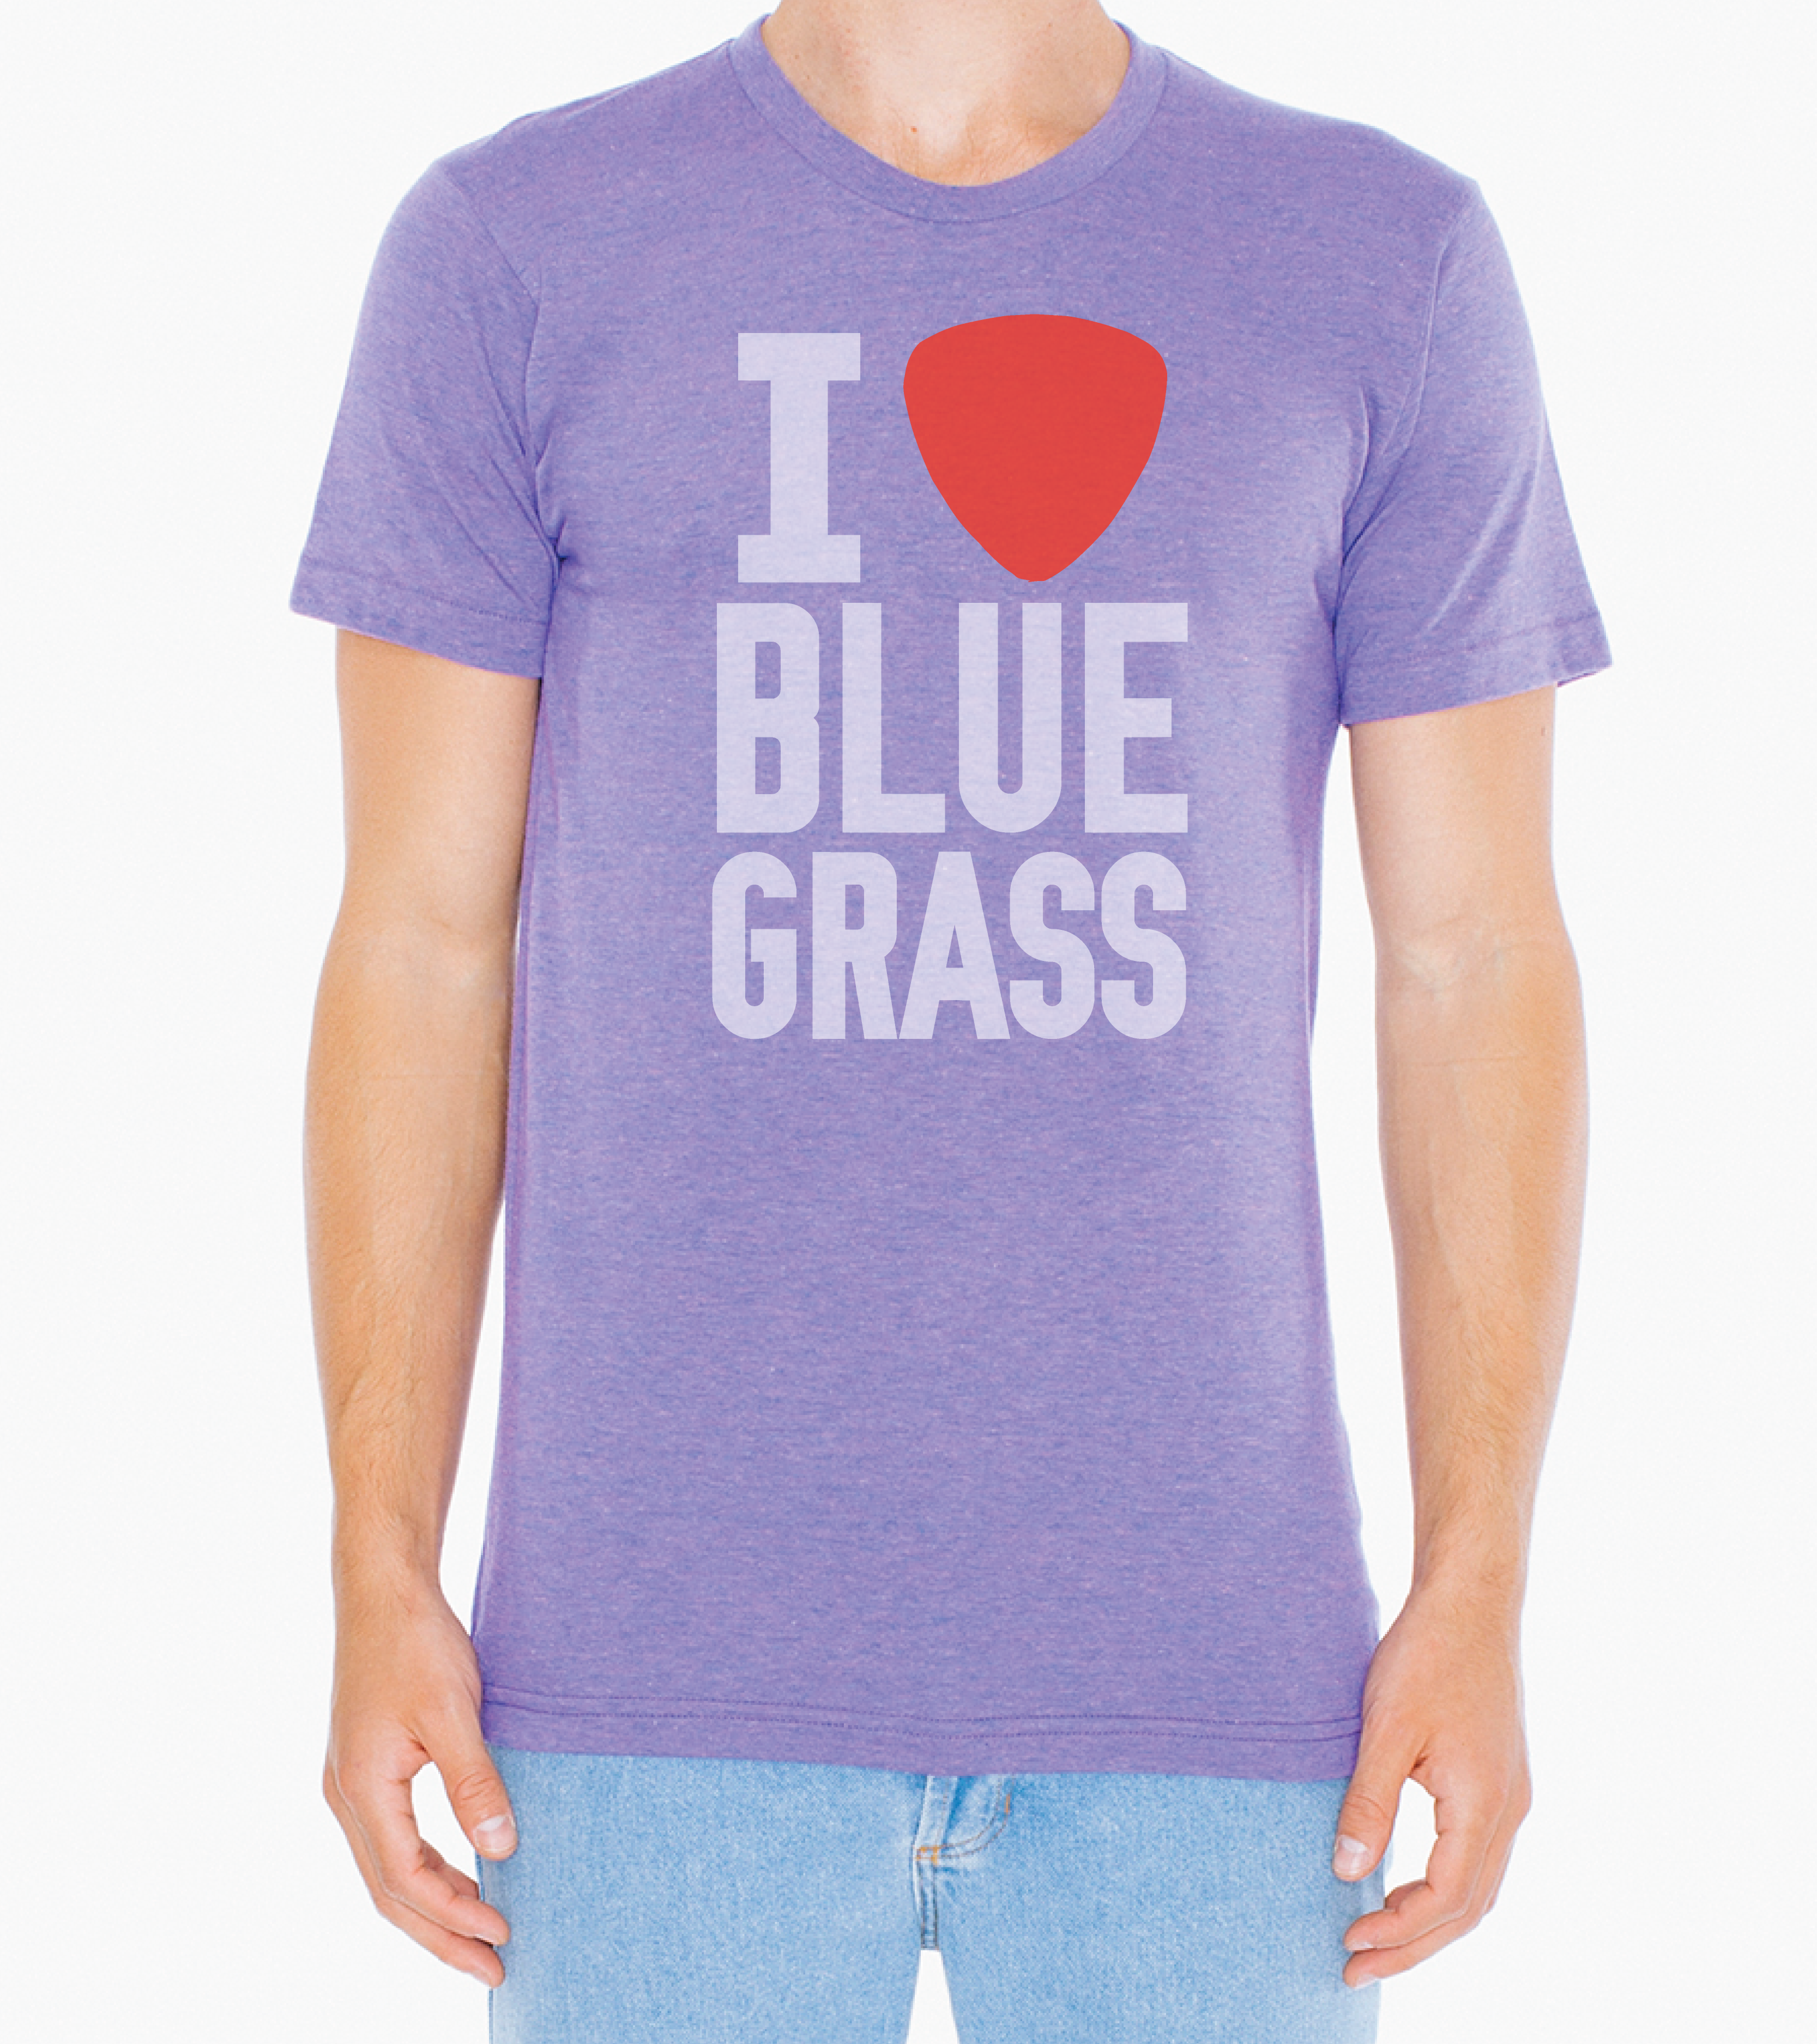 I Pick Bluegrass Tee. T-shirt Is Light Blue With Screen-printed Artwork.